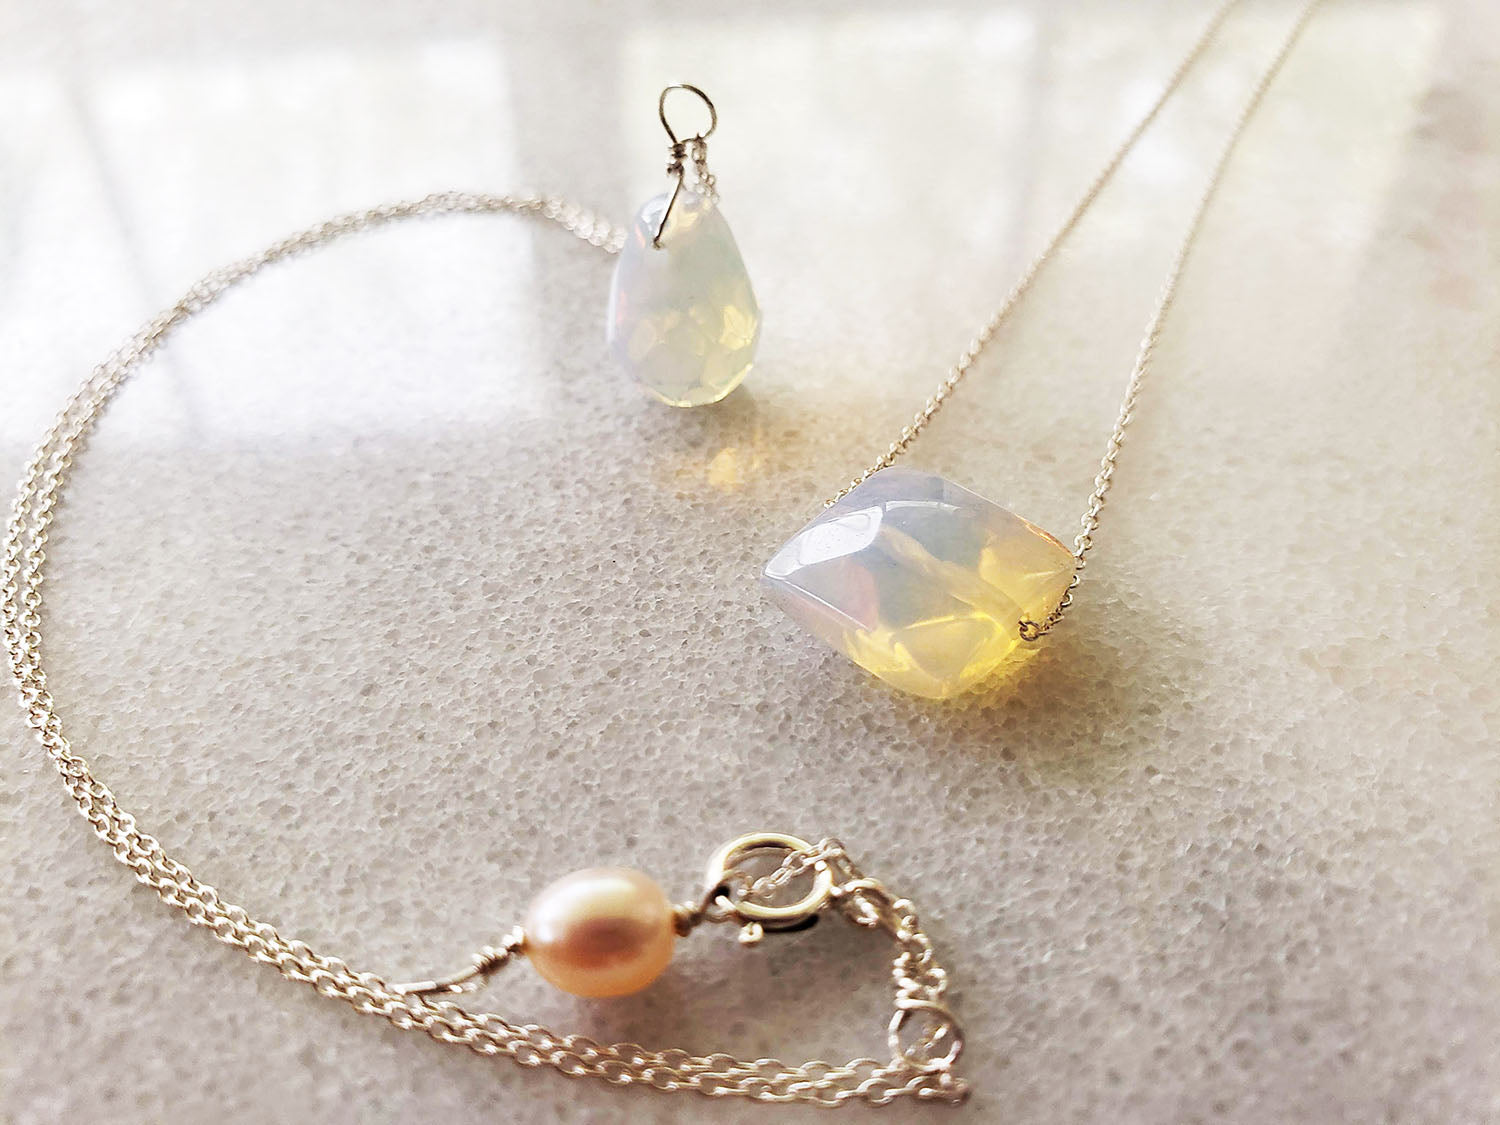 Moonstone Necklace  minimalist chains in Sterling Silver, Rose Gold or Gold